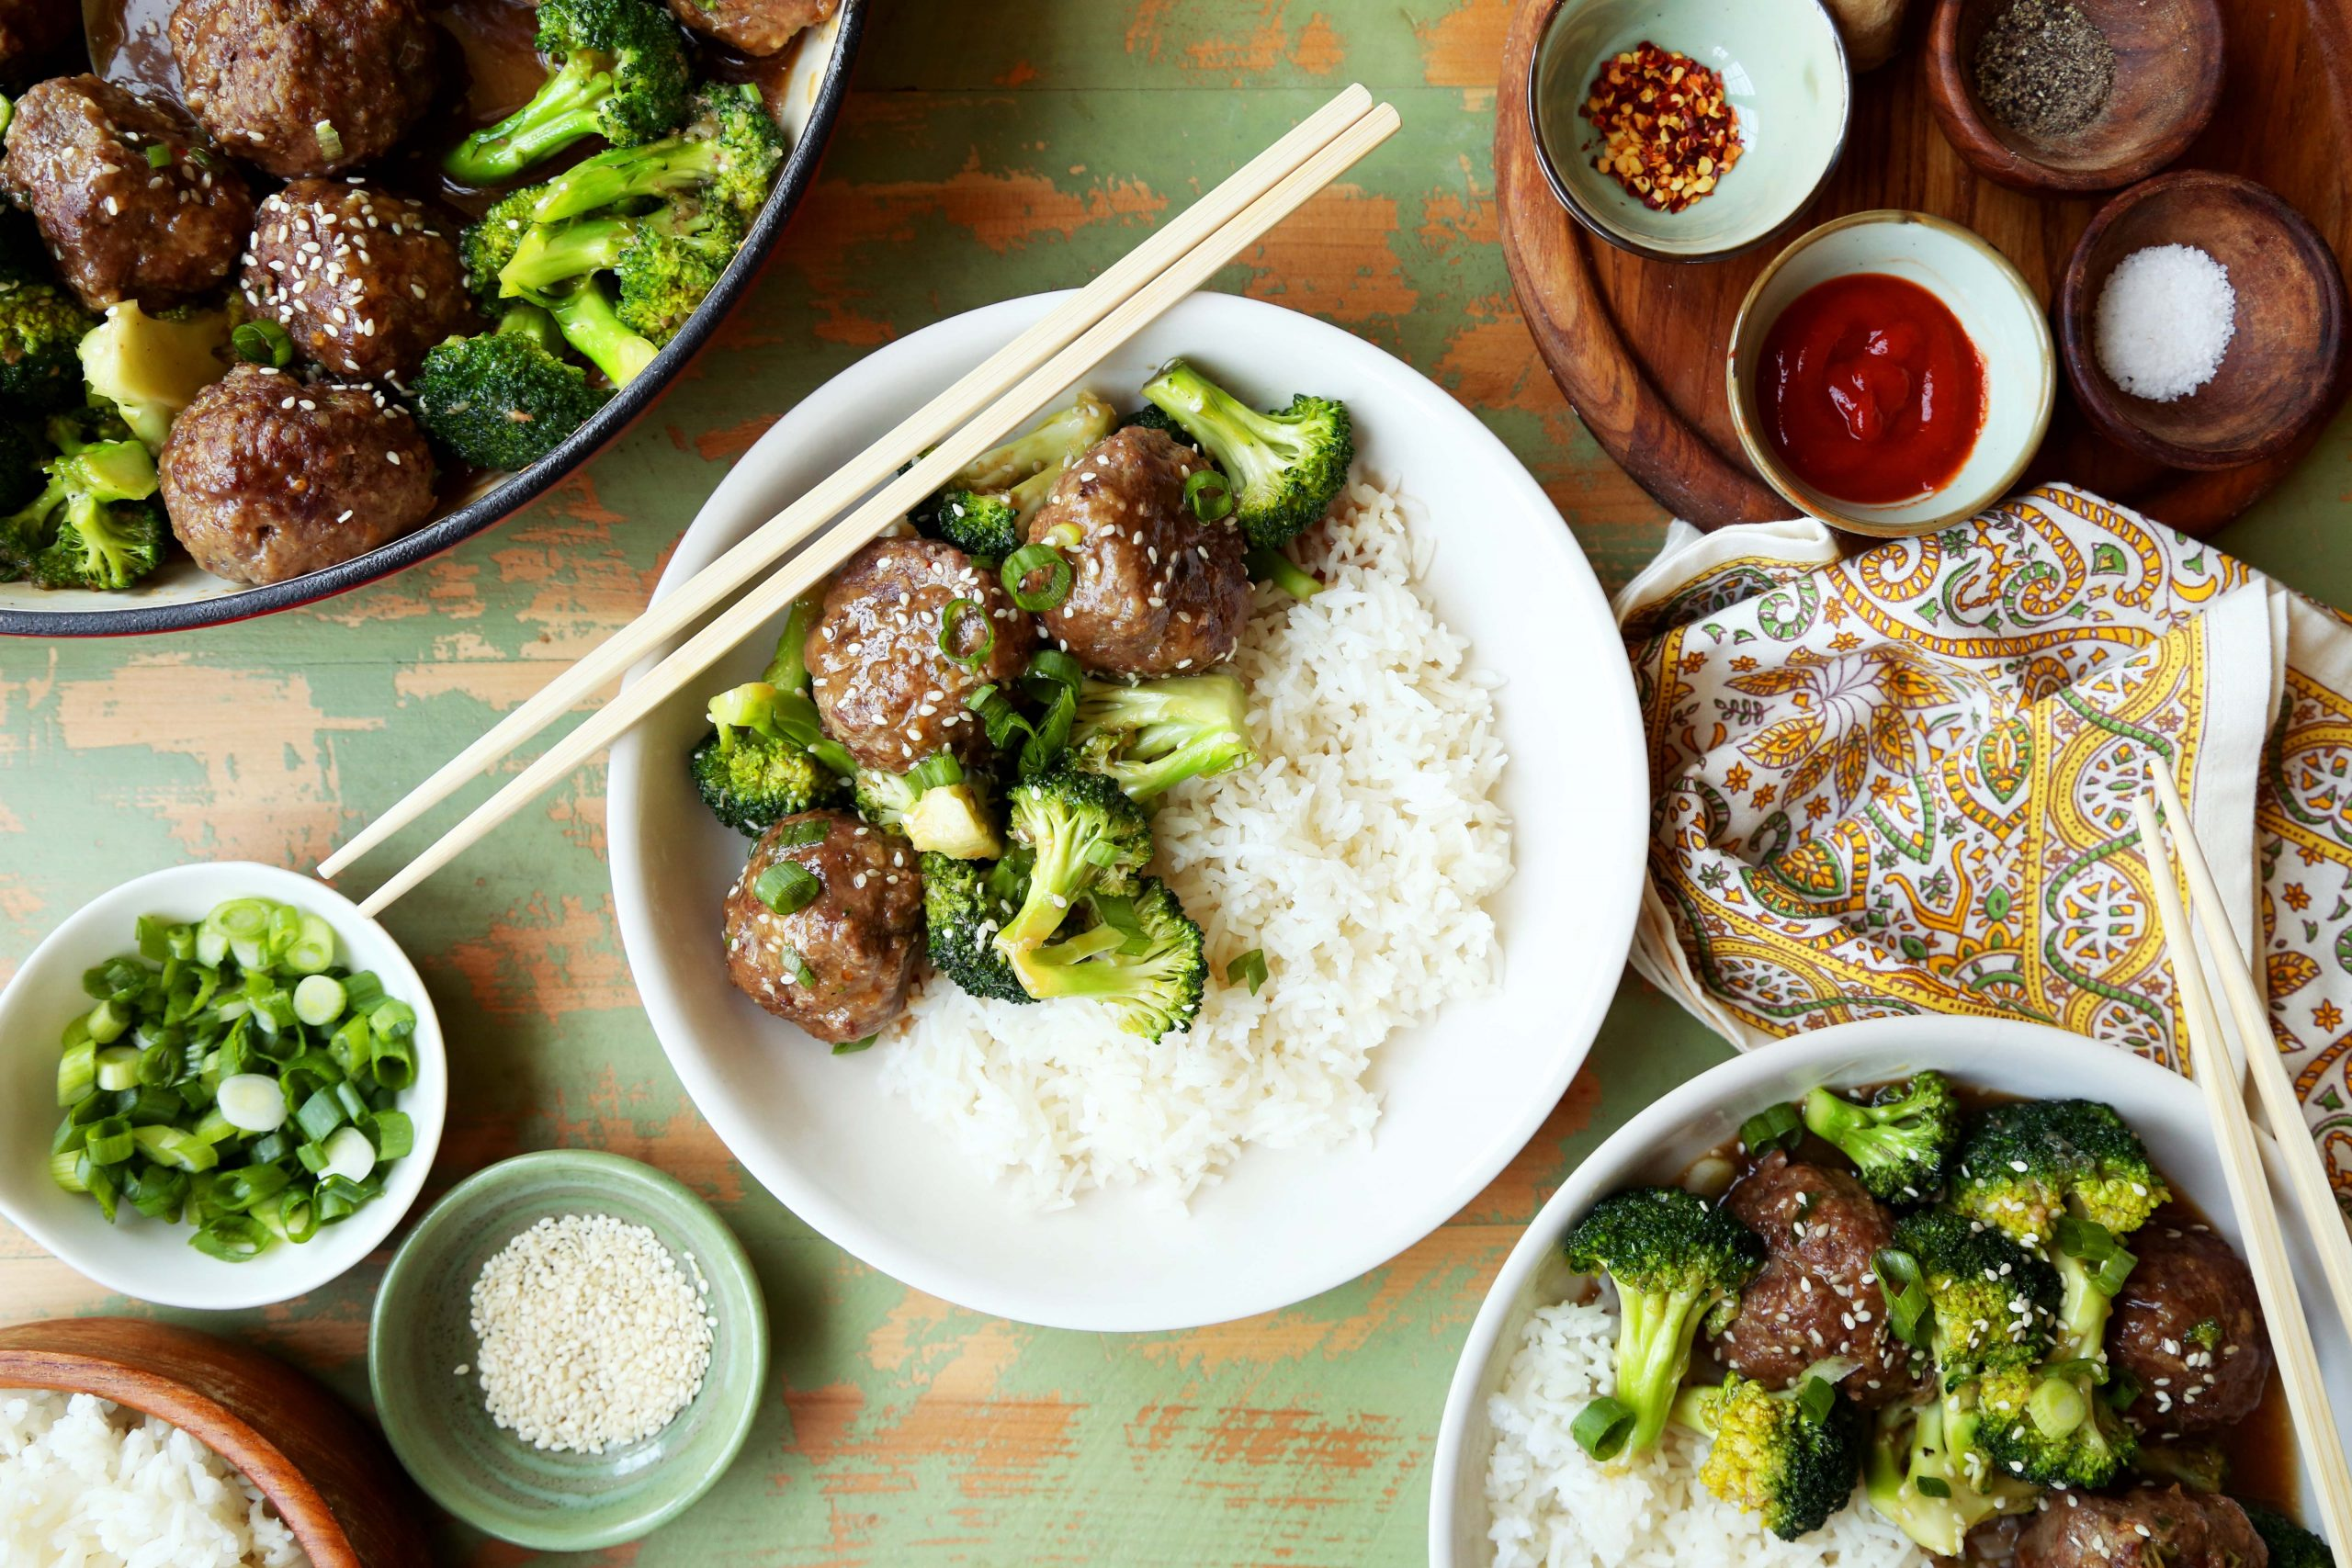 meatballs with rice and broccoli